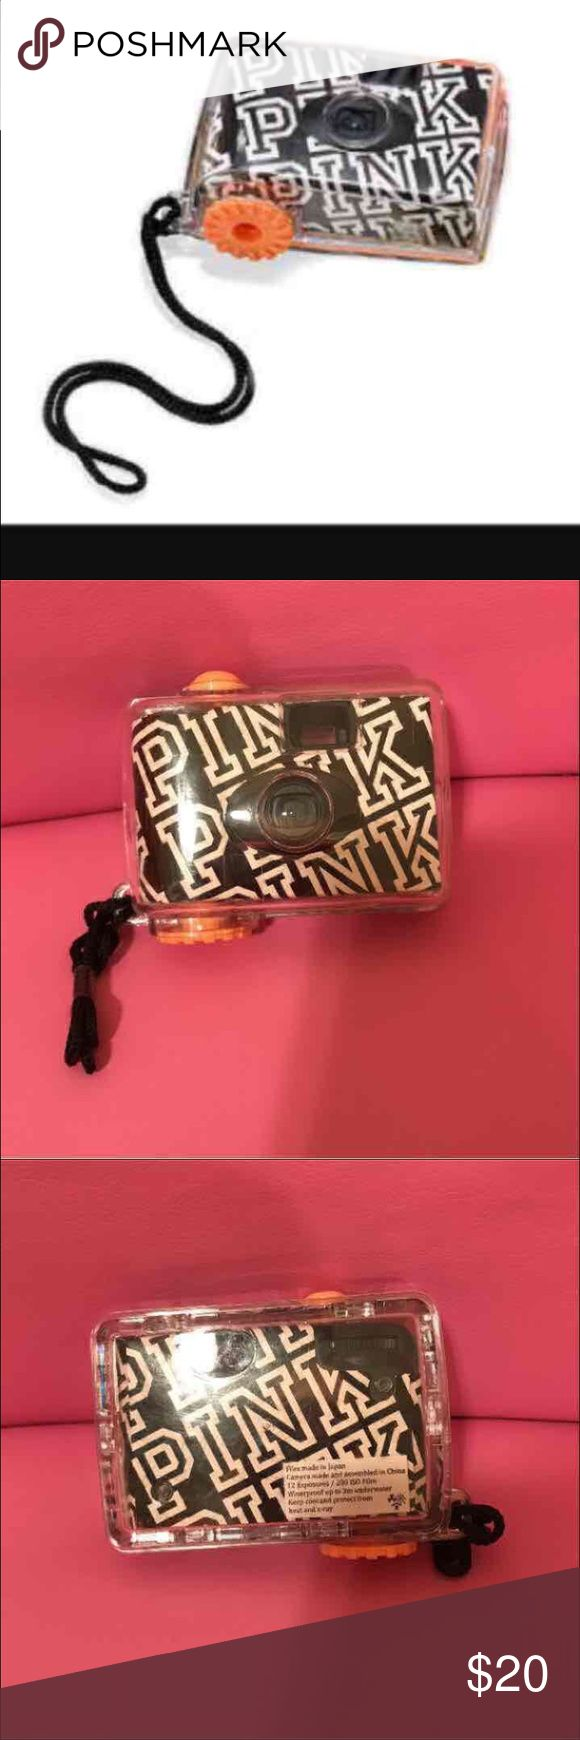 VICTORIAS SECRET WATERPROOF CAMERA **VICTORIAS SECRET DISPOSABLE WATERPROOF CAMERA** -PINK NATION camera💗NO TRADES💗 -brand new -never used -waterproof up to 3M -12 exposure  -super cute -limited edition -comes from a pet free and smoke free home PINK Victoria's Secret Other